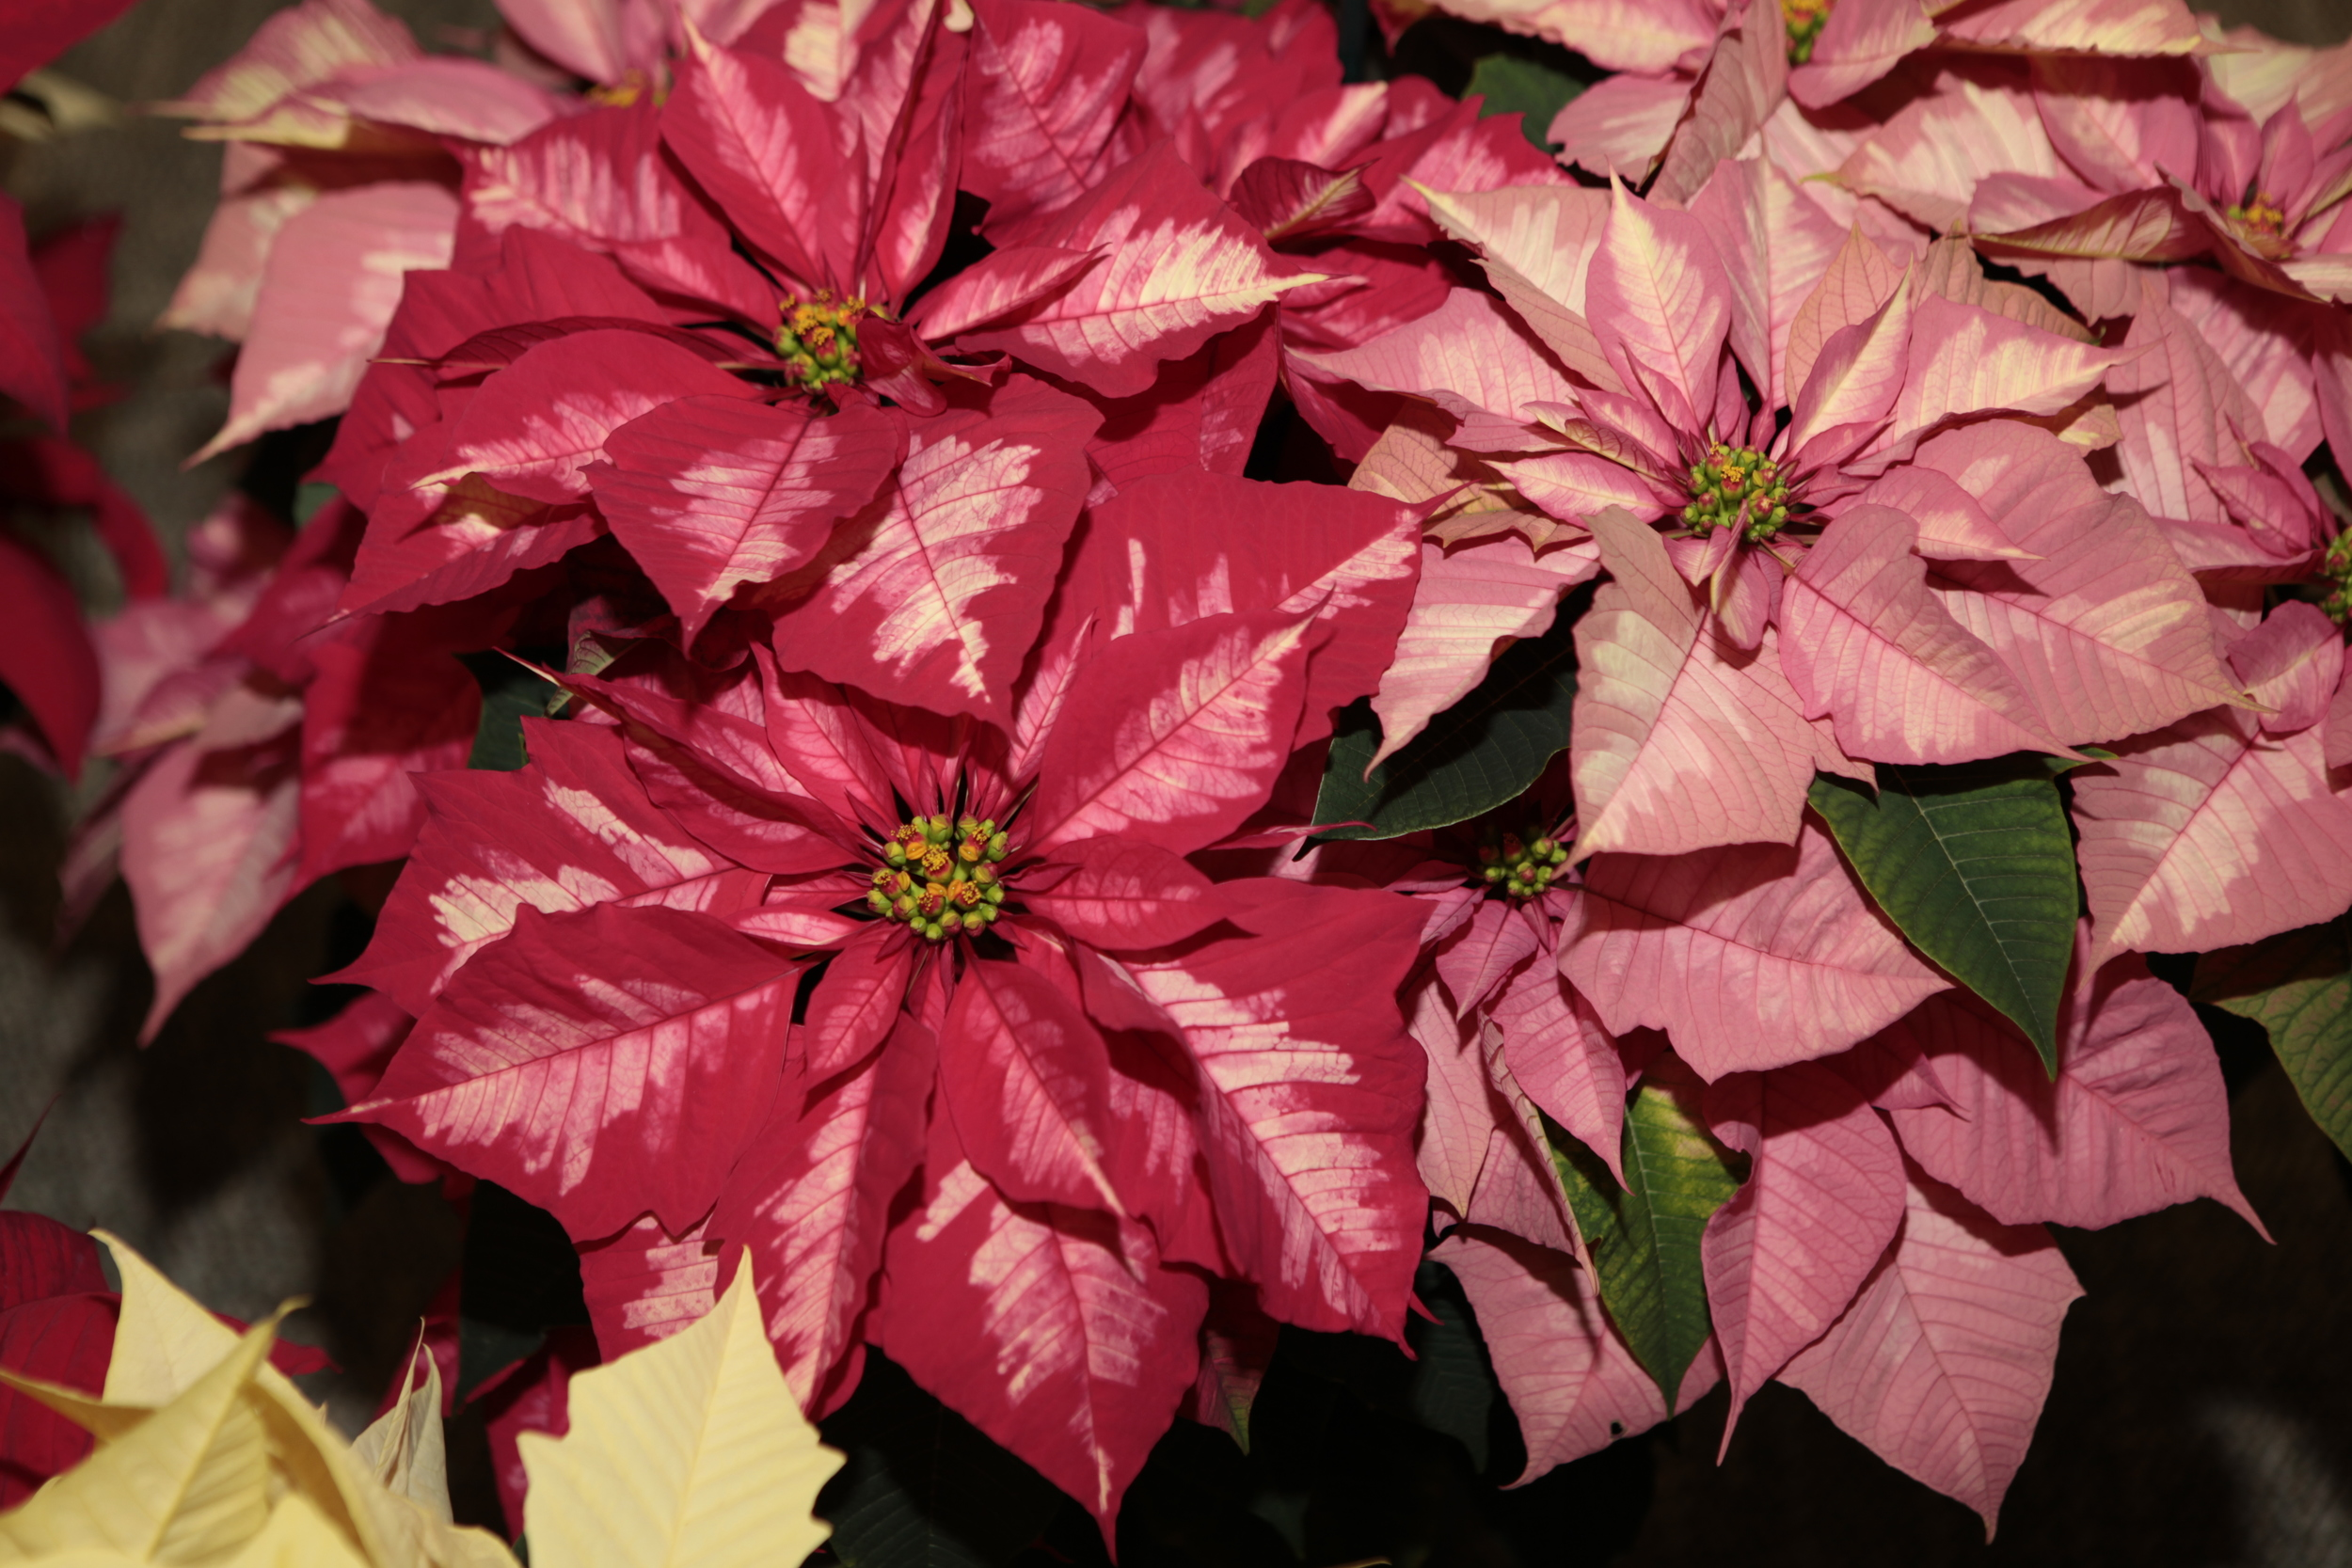 The diversity of new poinsettias is amazing to see.